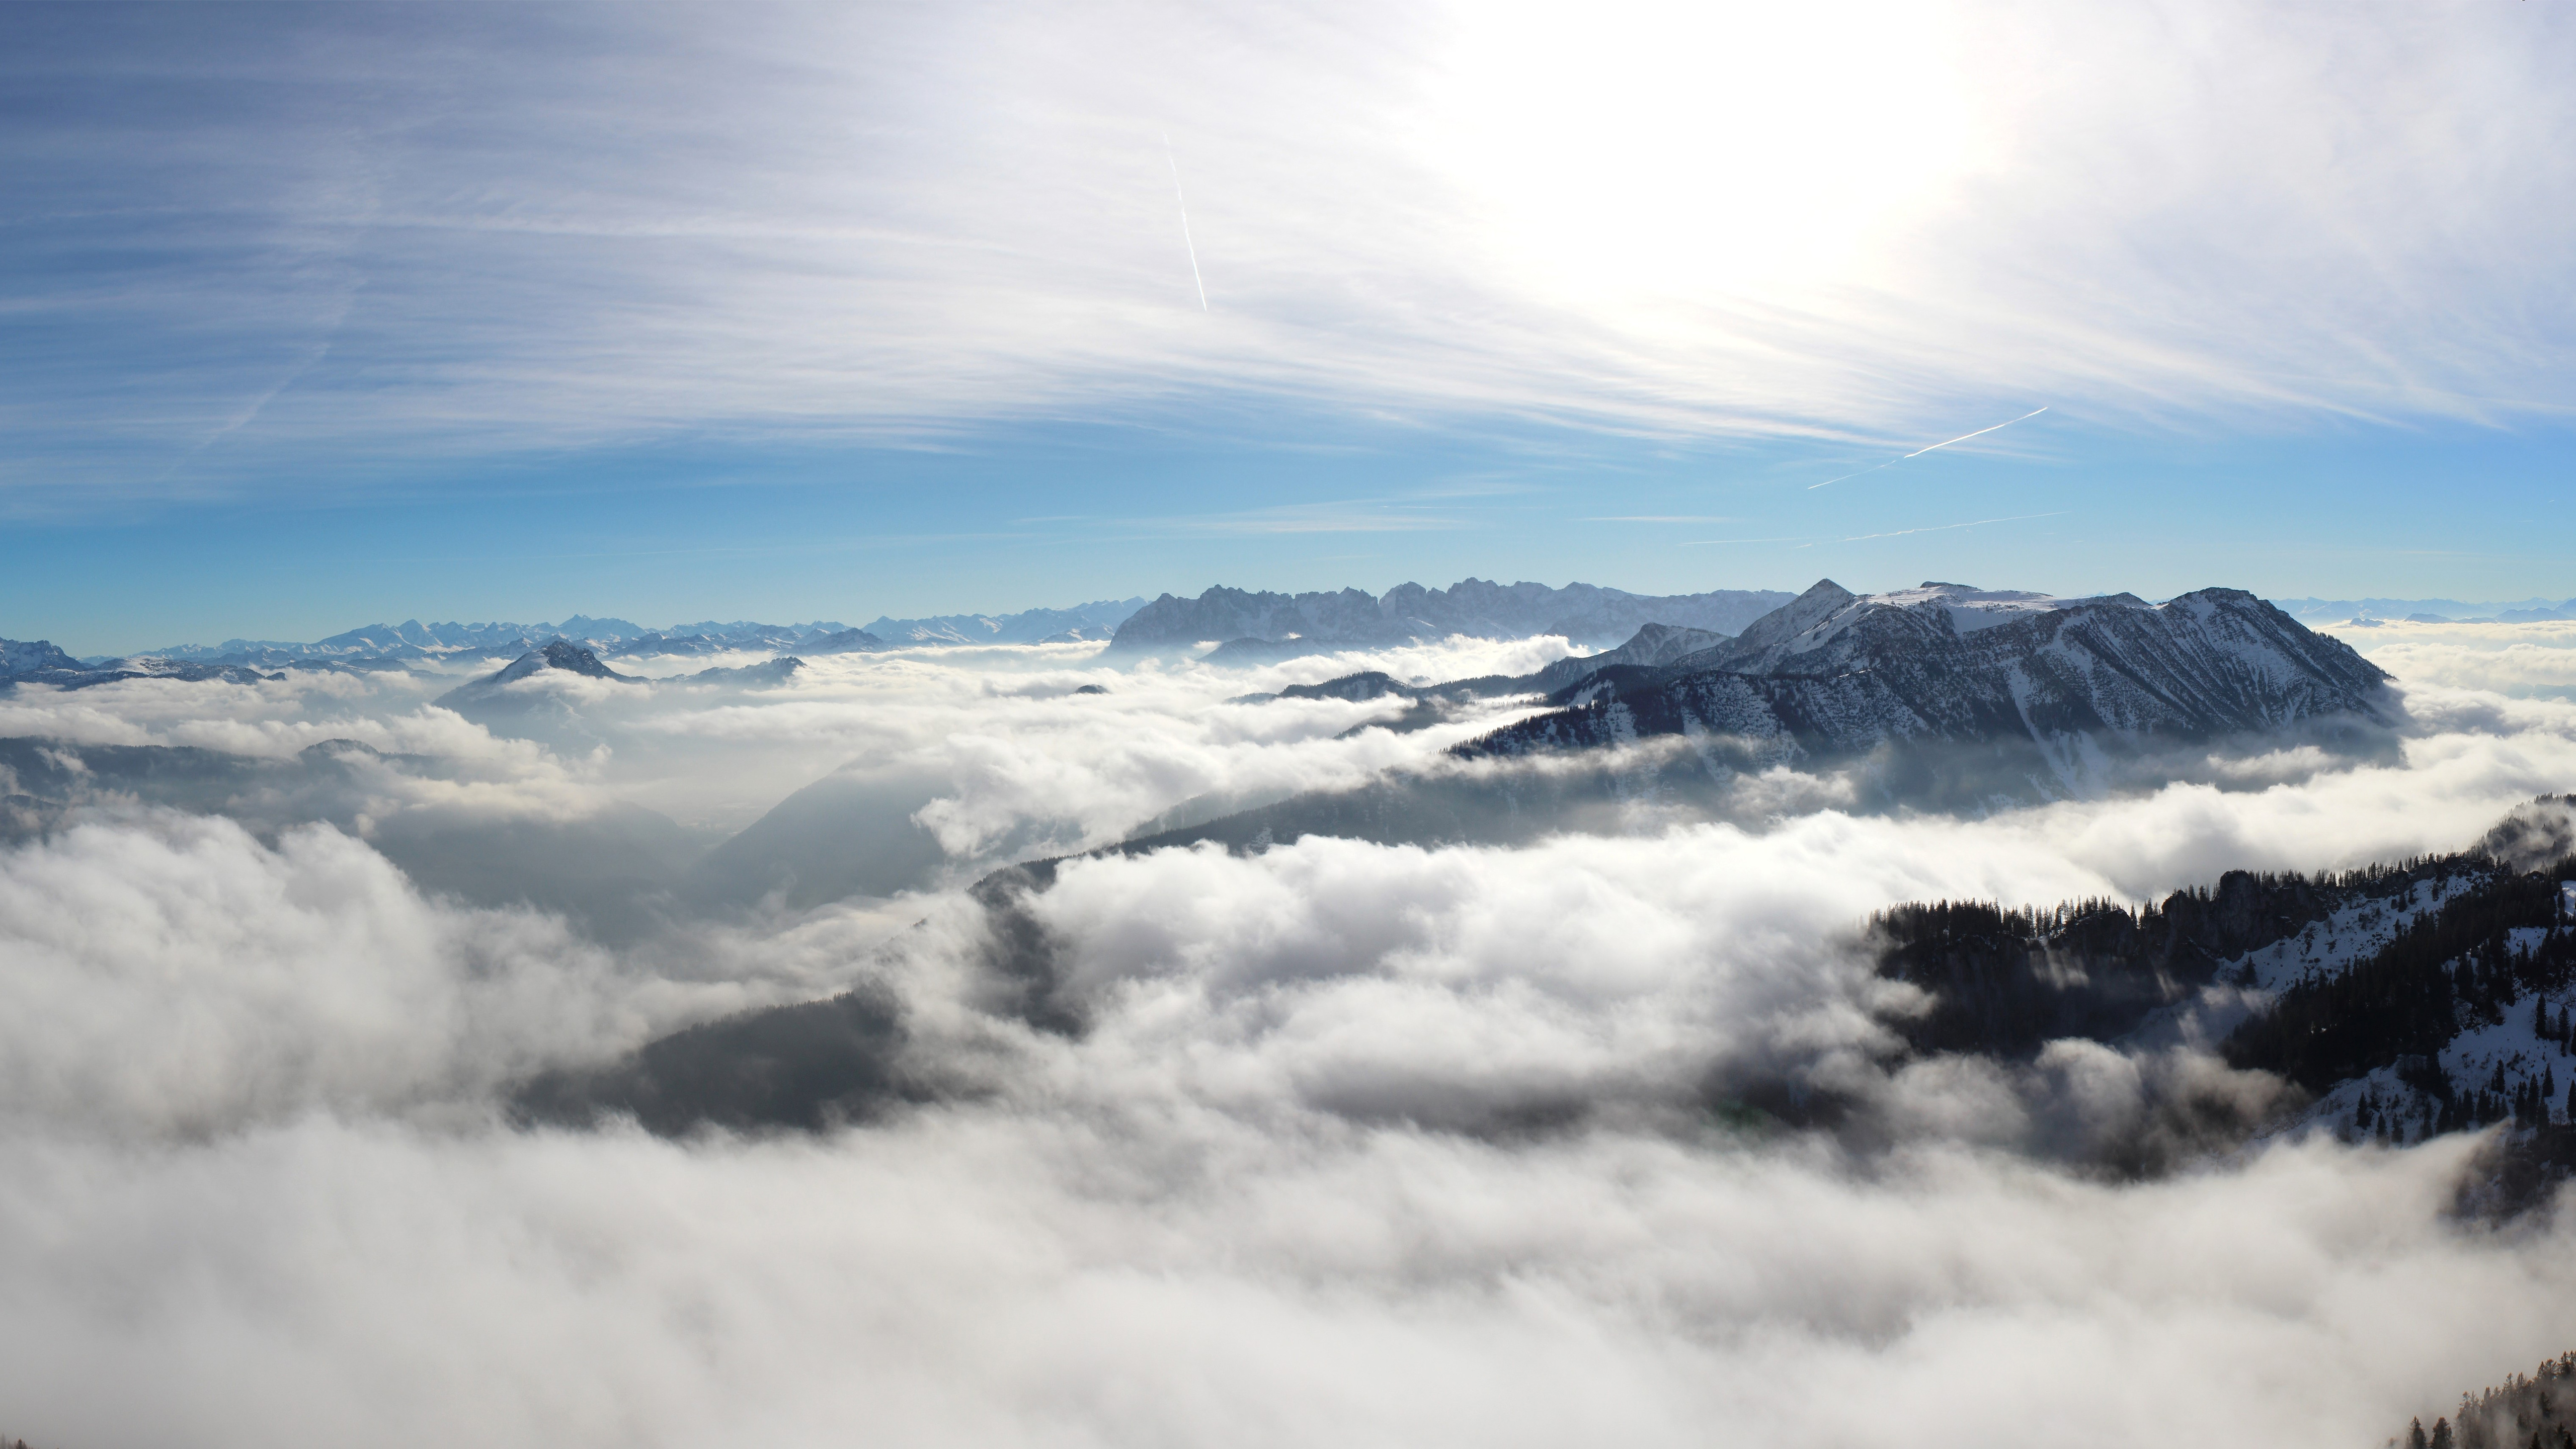 Cloudy Mountains 4K 5K Wallpapers | HD Wallpapers | ID #17107